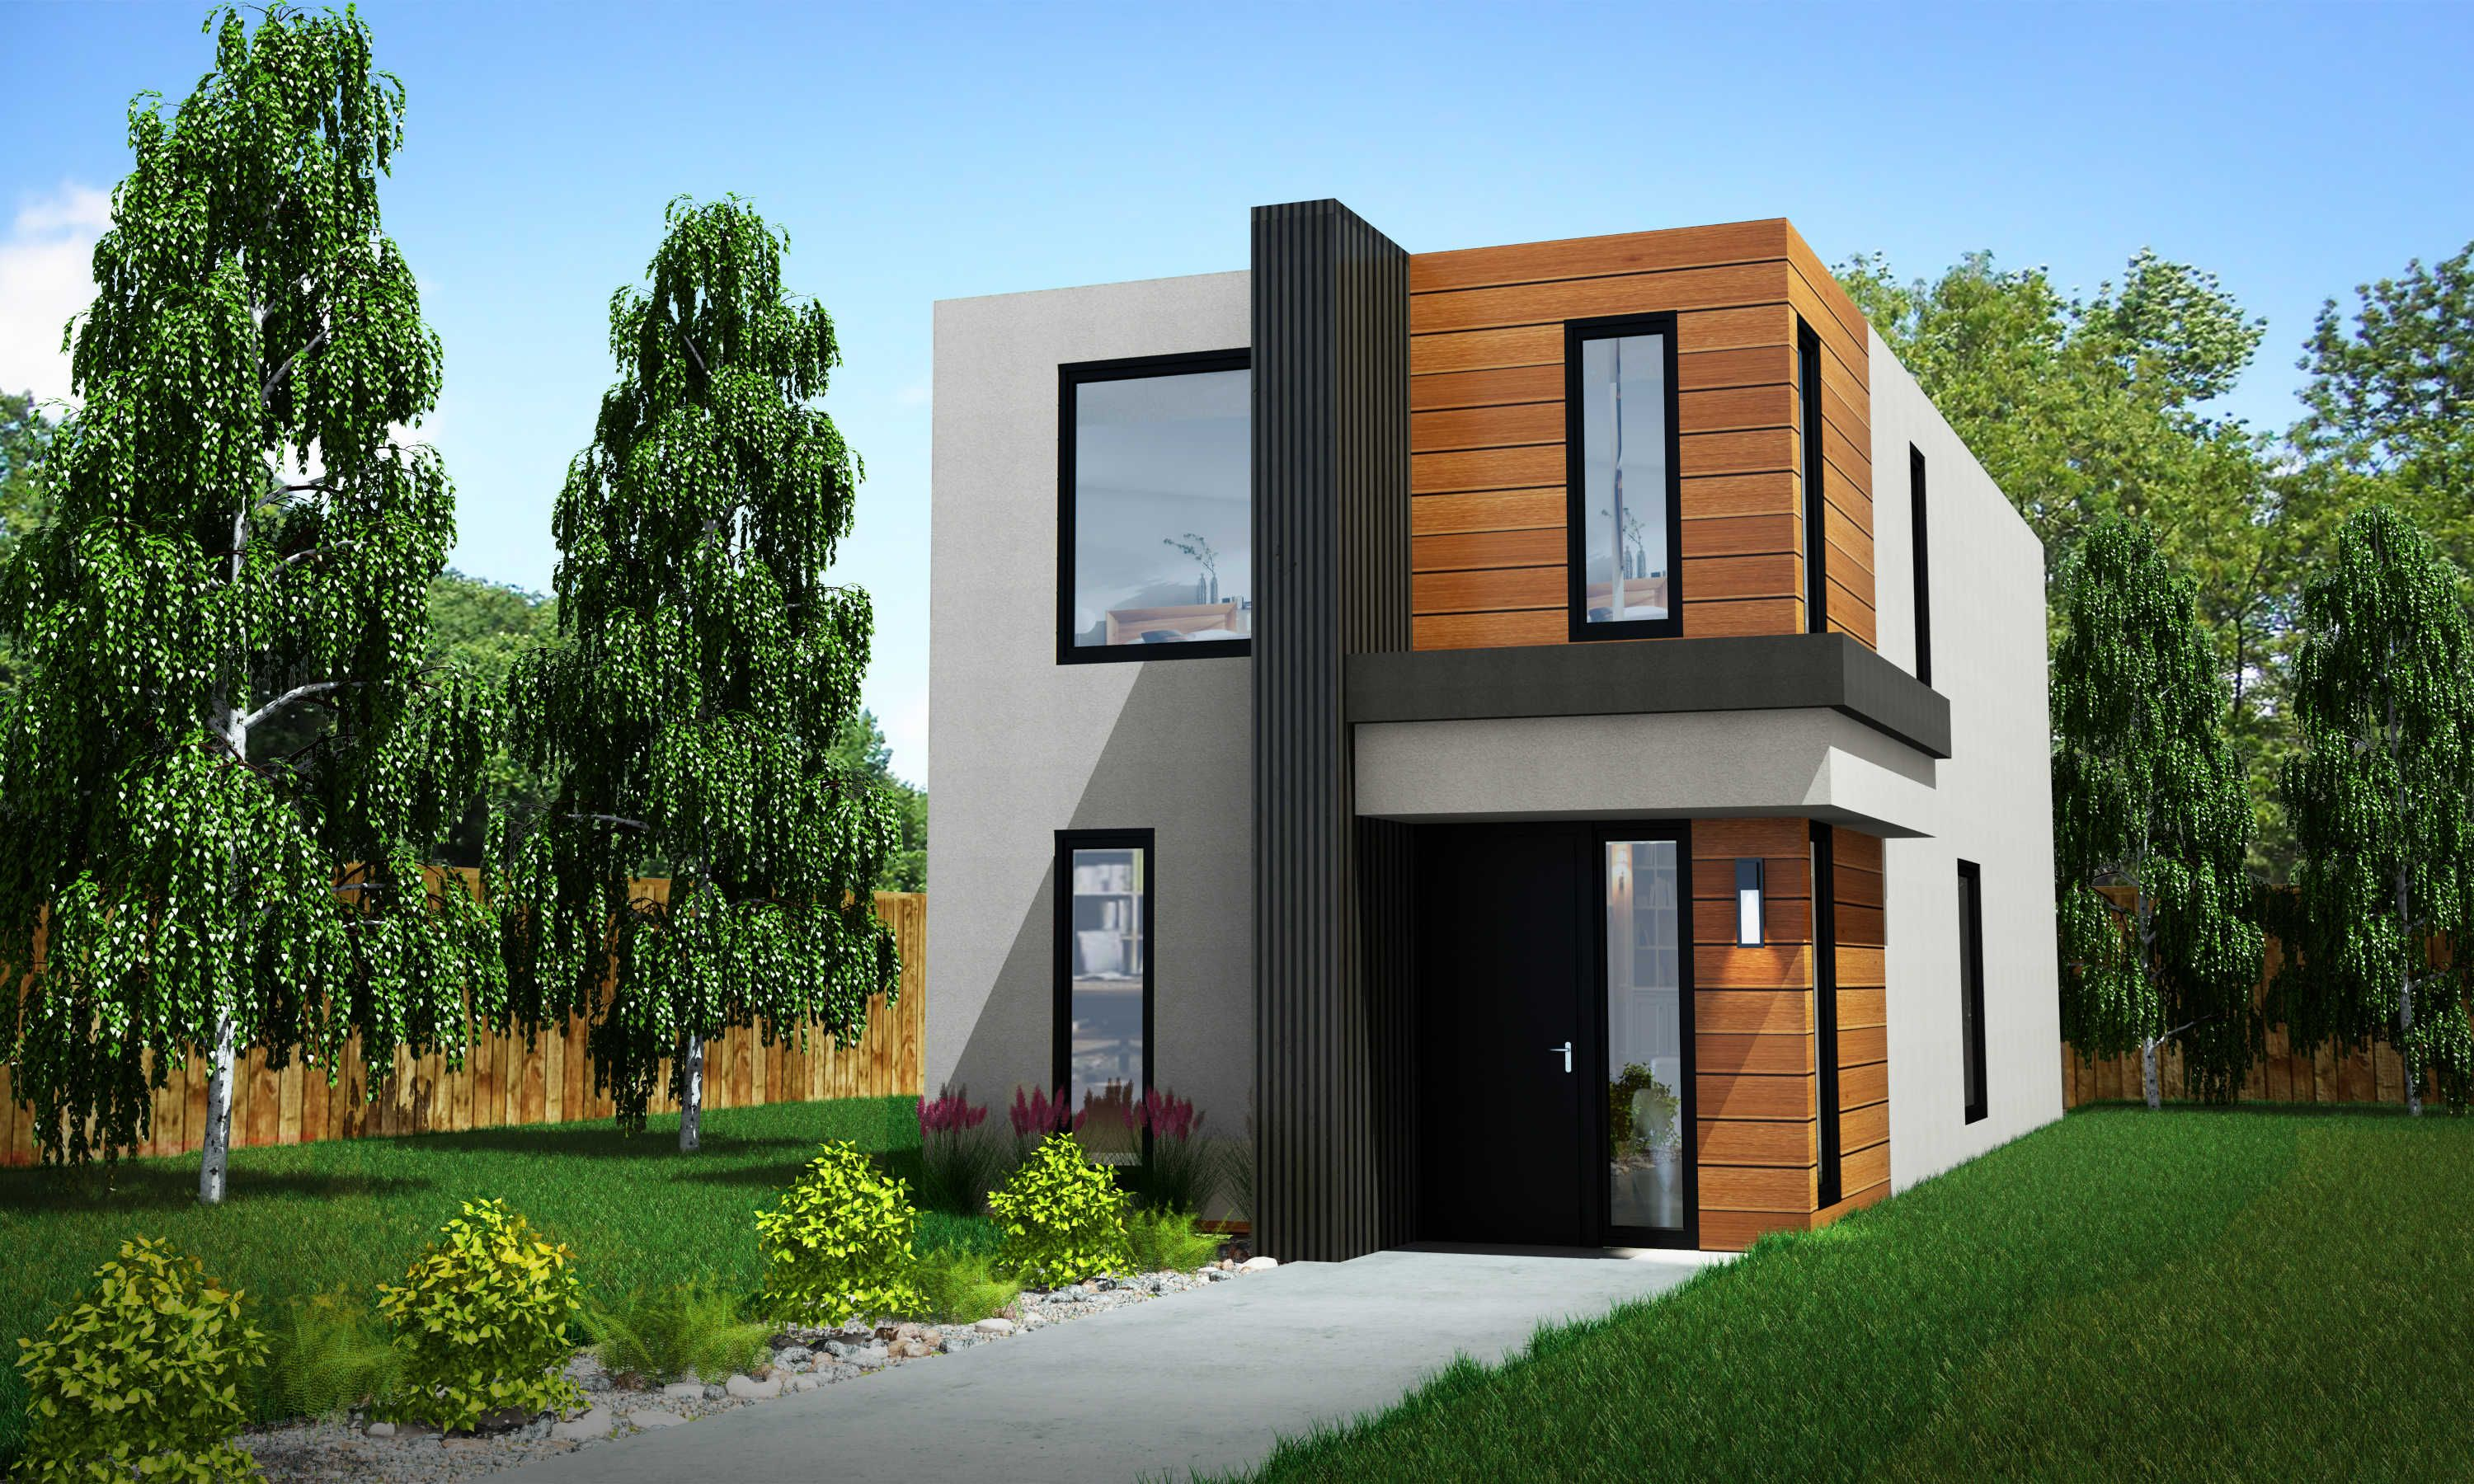 skinny home infill edmonton modern shipping container sea can home